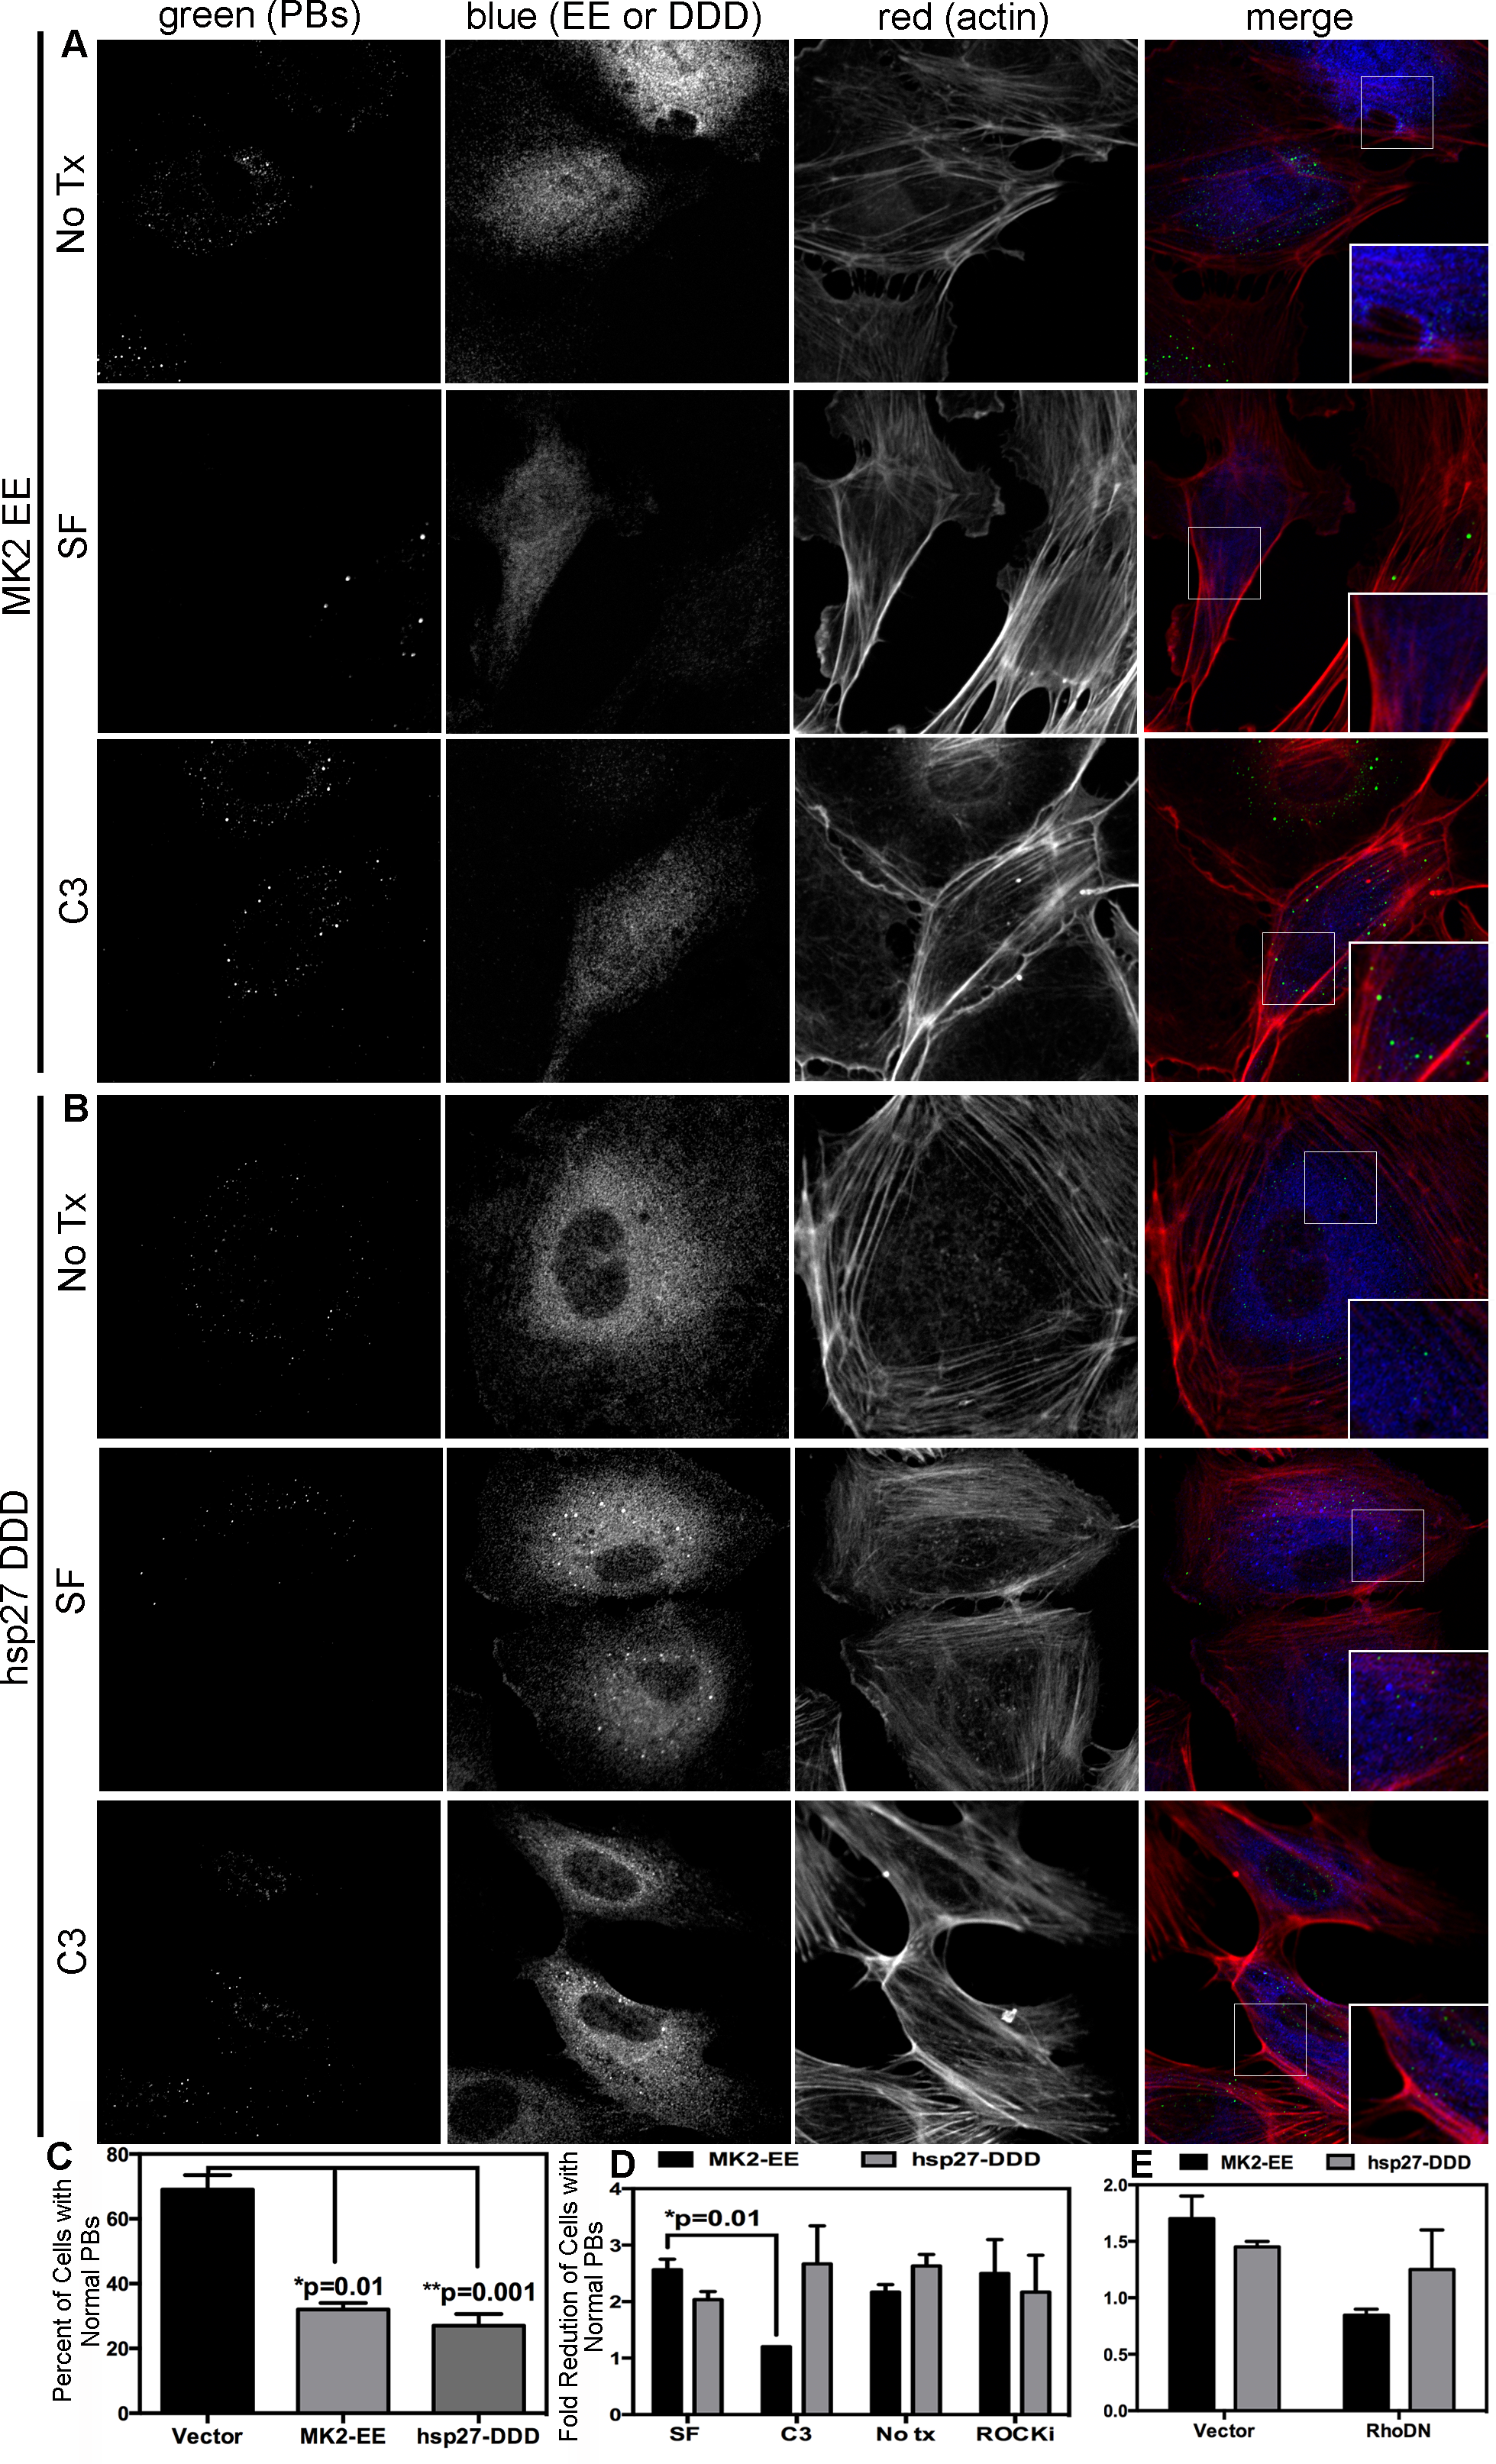 Upstream activators of Rho GTPase (MK2 EE and hsp27 DDD) disrupt p-bodies.